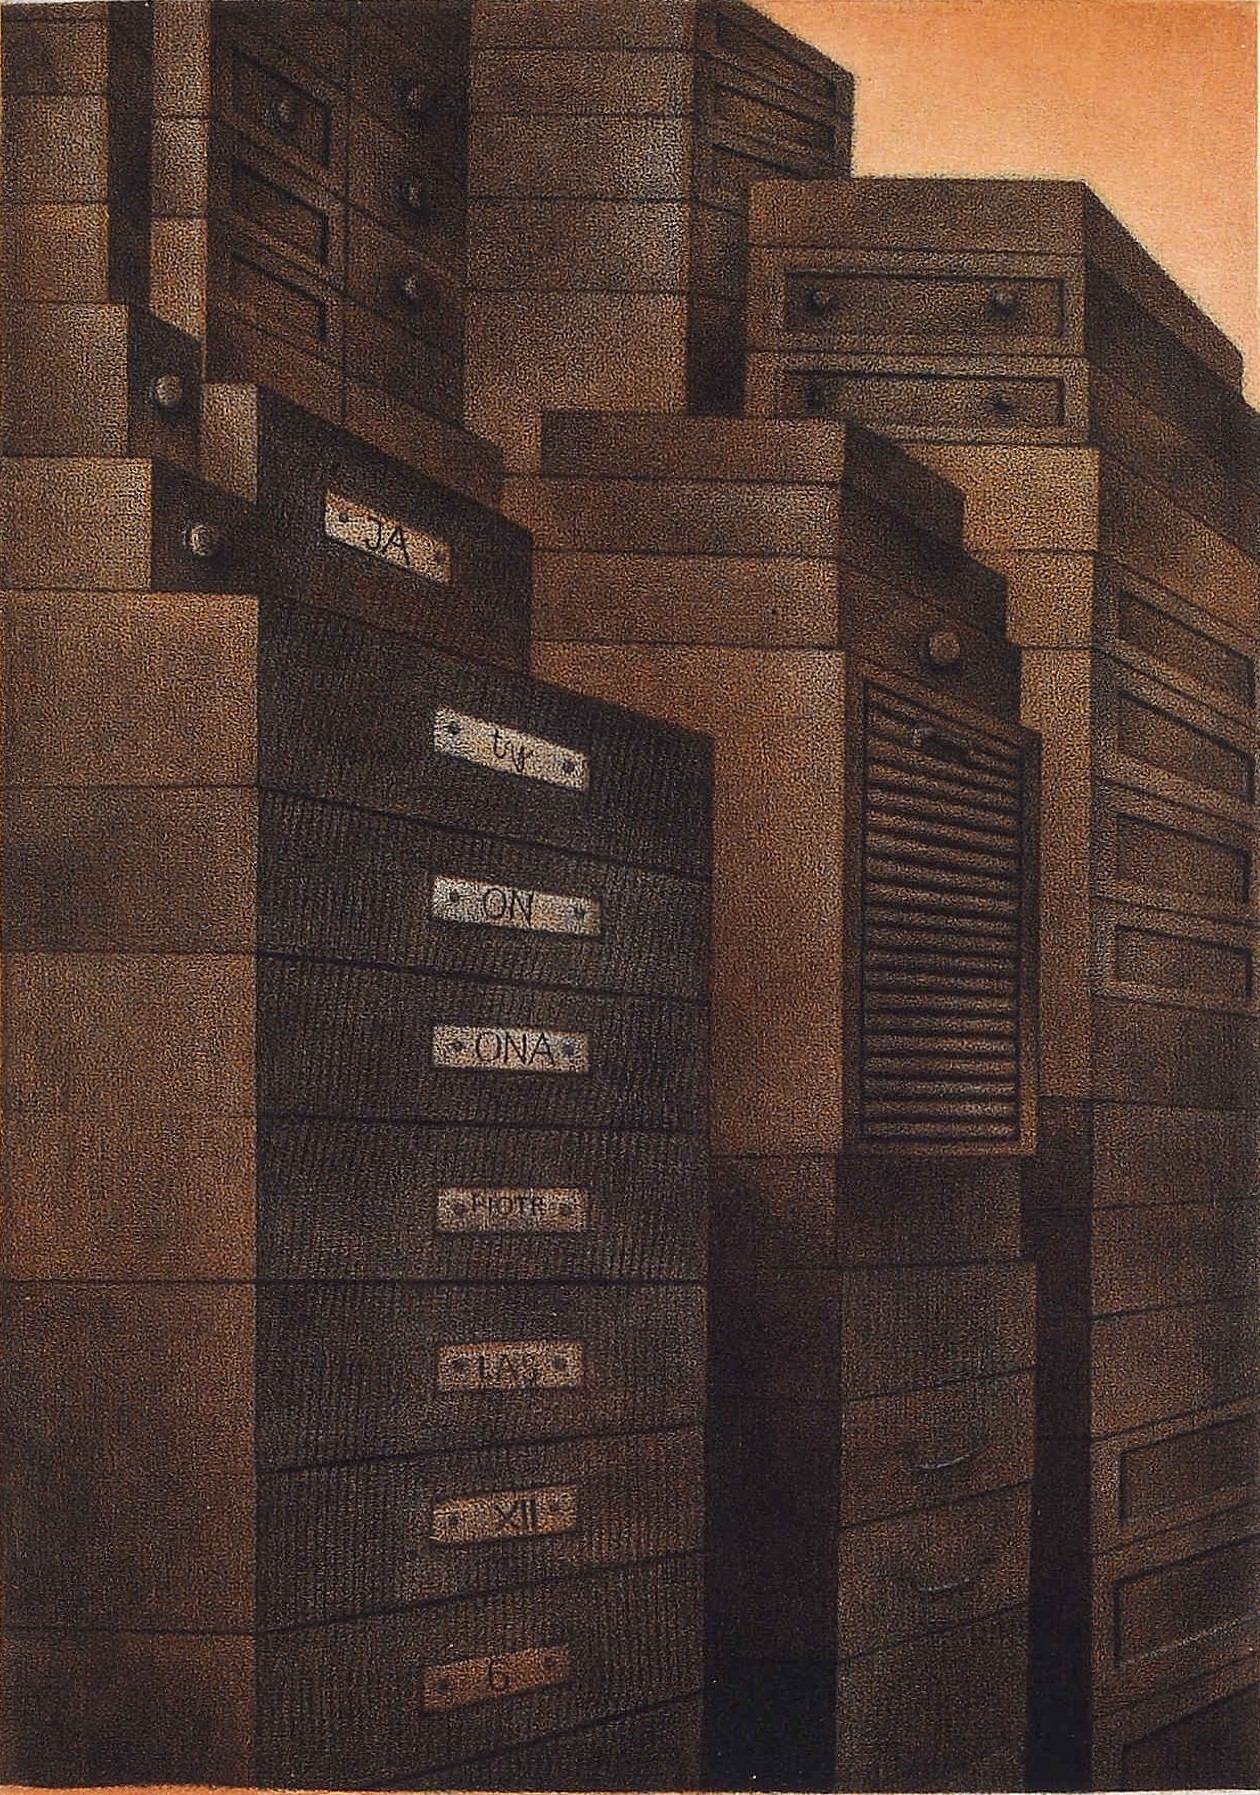 Private archives, 1985